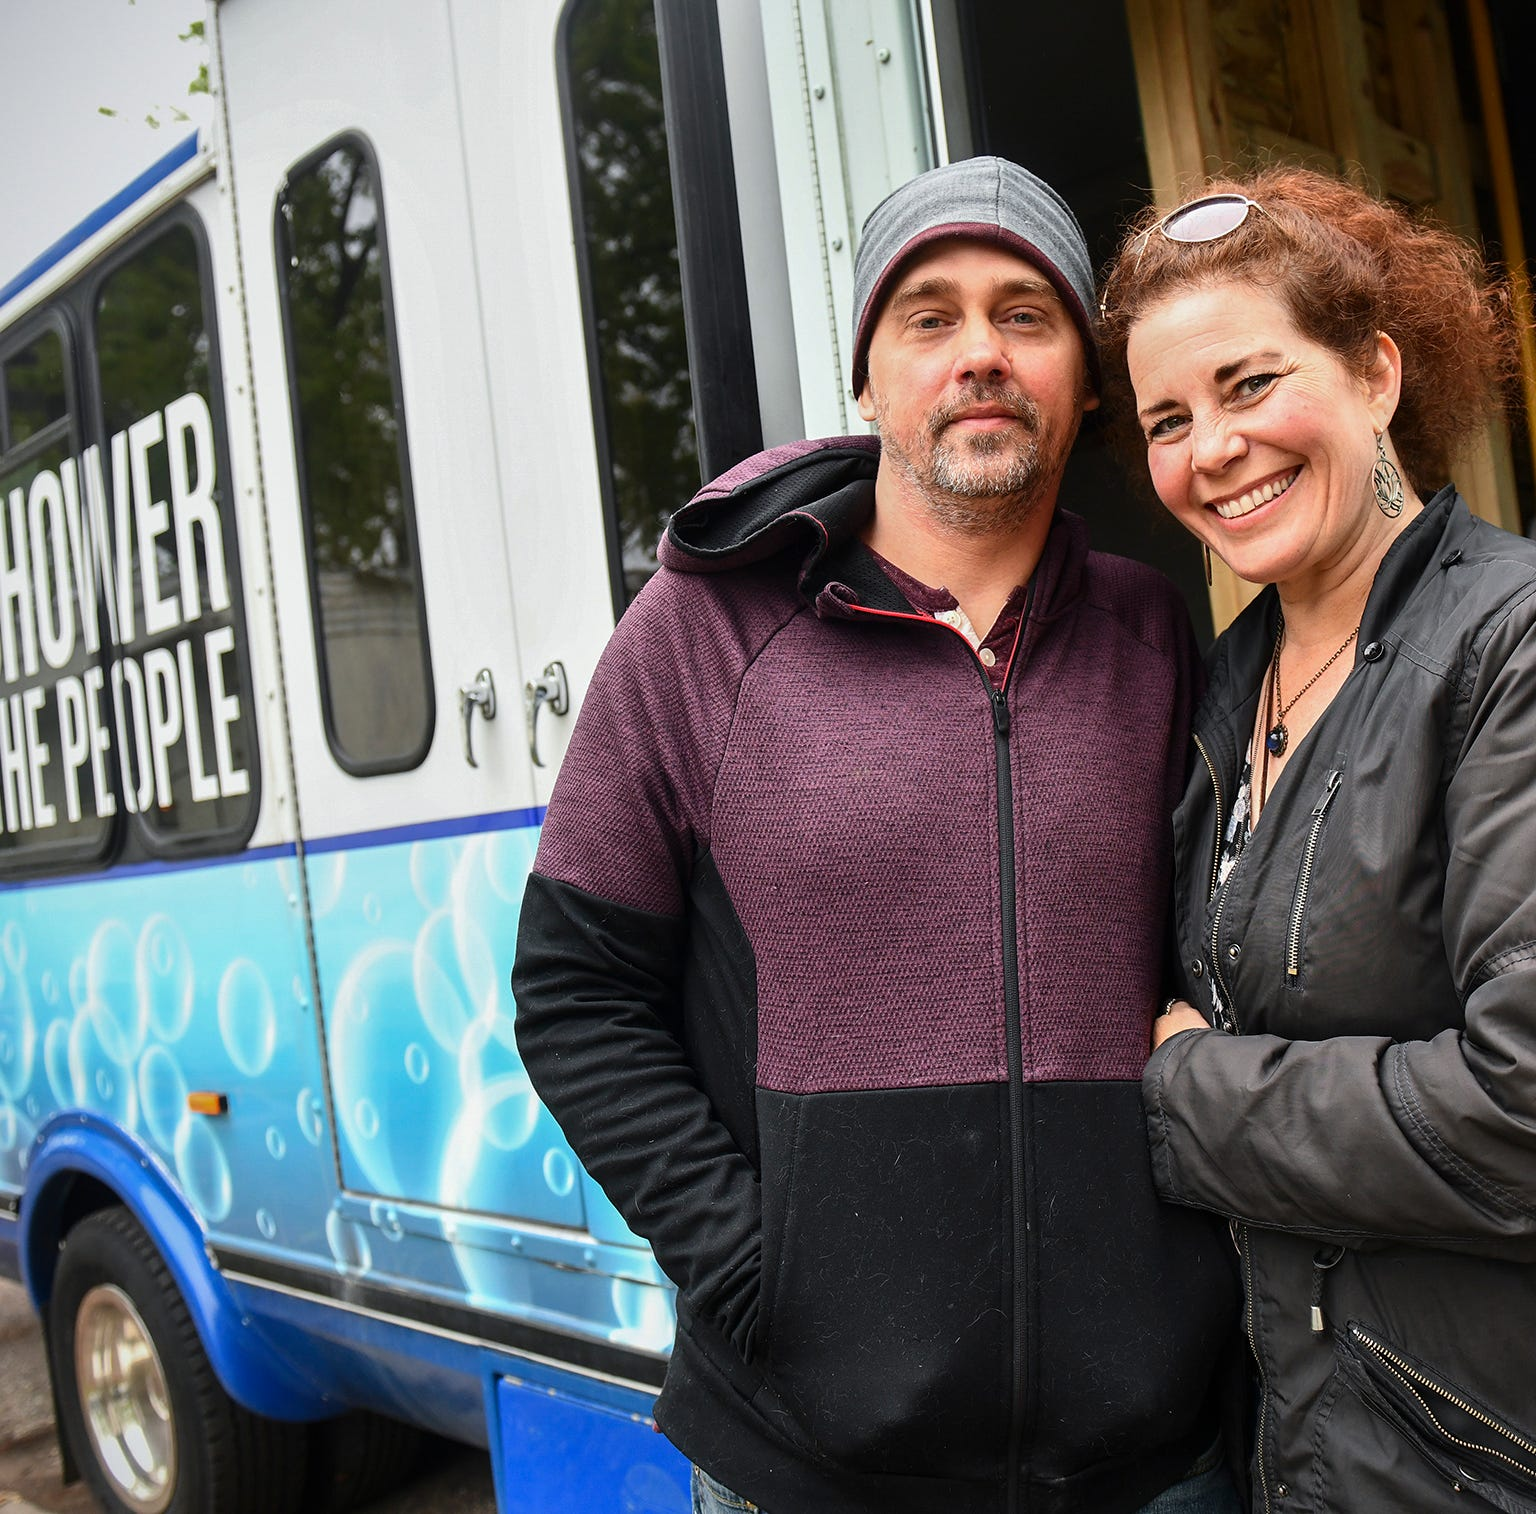 Helping the homeless: Couple creates mobile shower unit, will begin operating in June